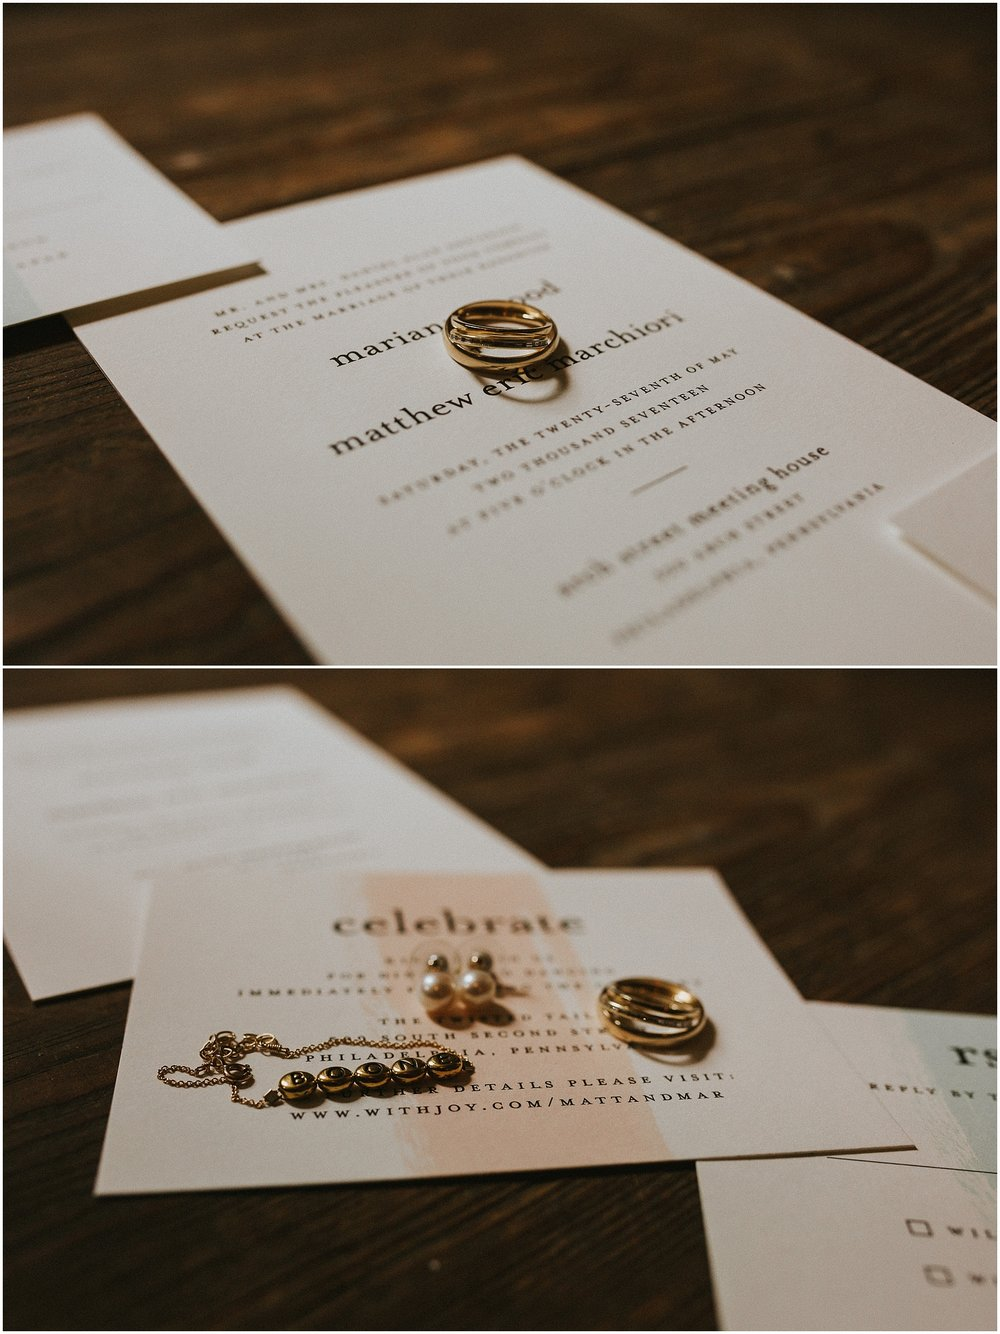 Bridal jewelry styled against pastel colored wedding invitations at the Arch Street Meeting House in Philadelphia Pennsylvania